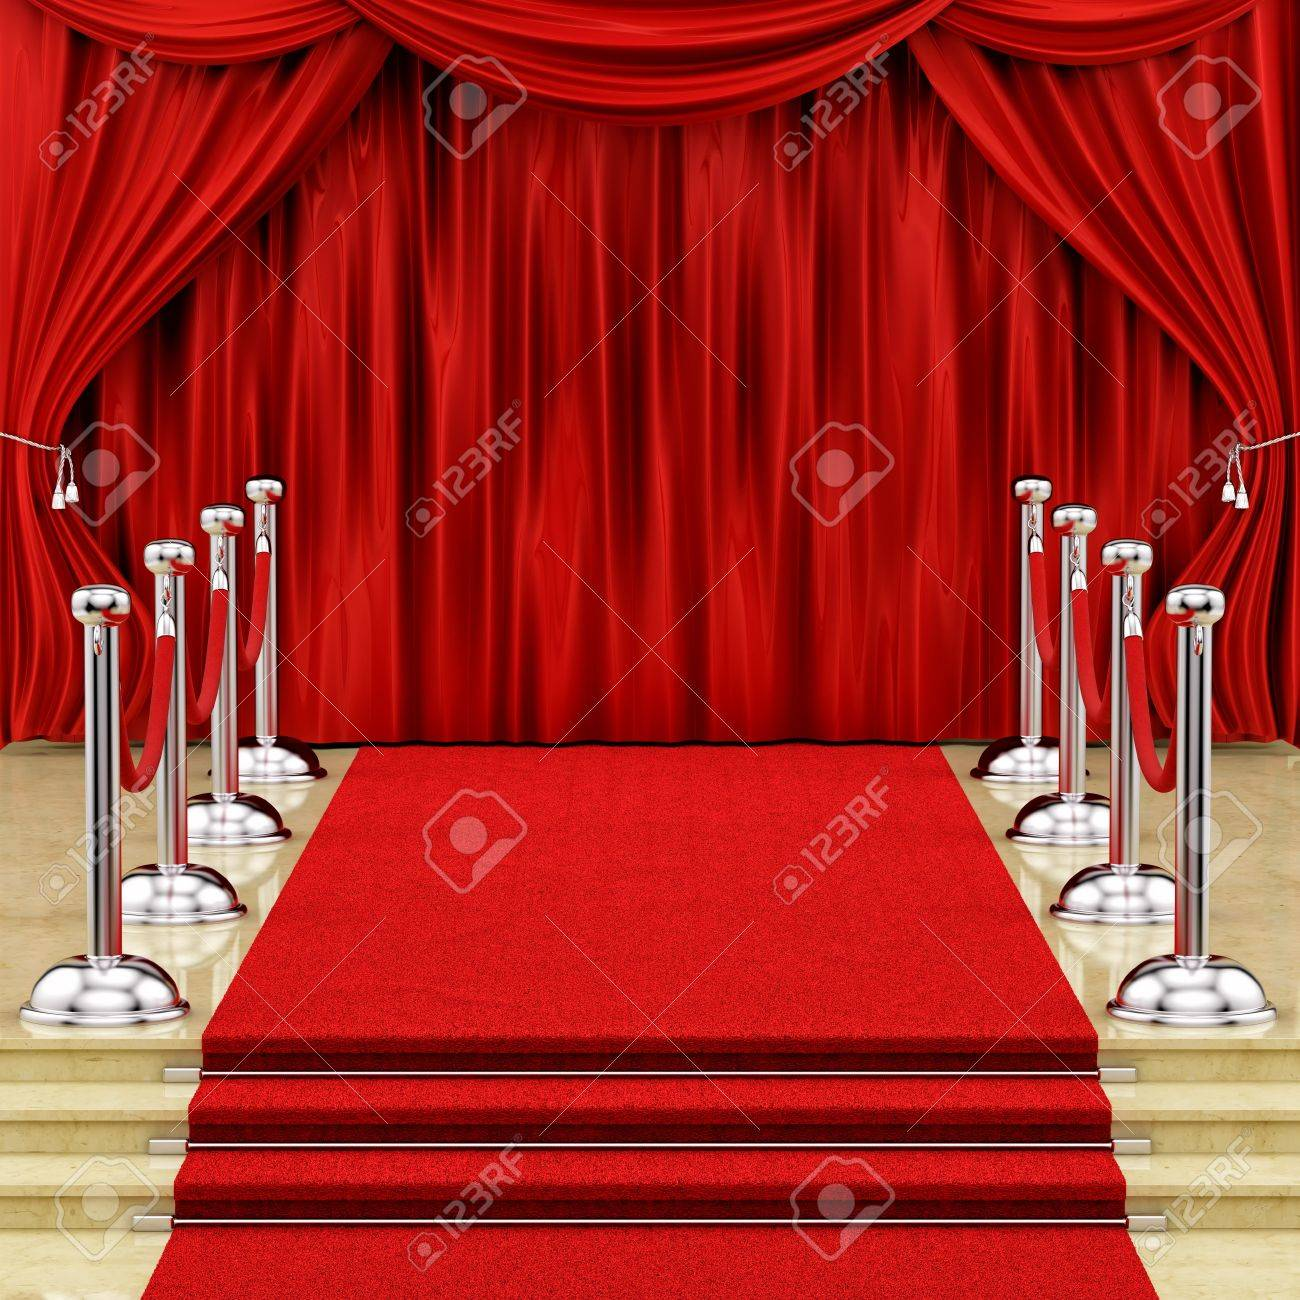 render of a red carpet with silver stanchions and curtains Stock Photo - 16876556